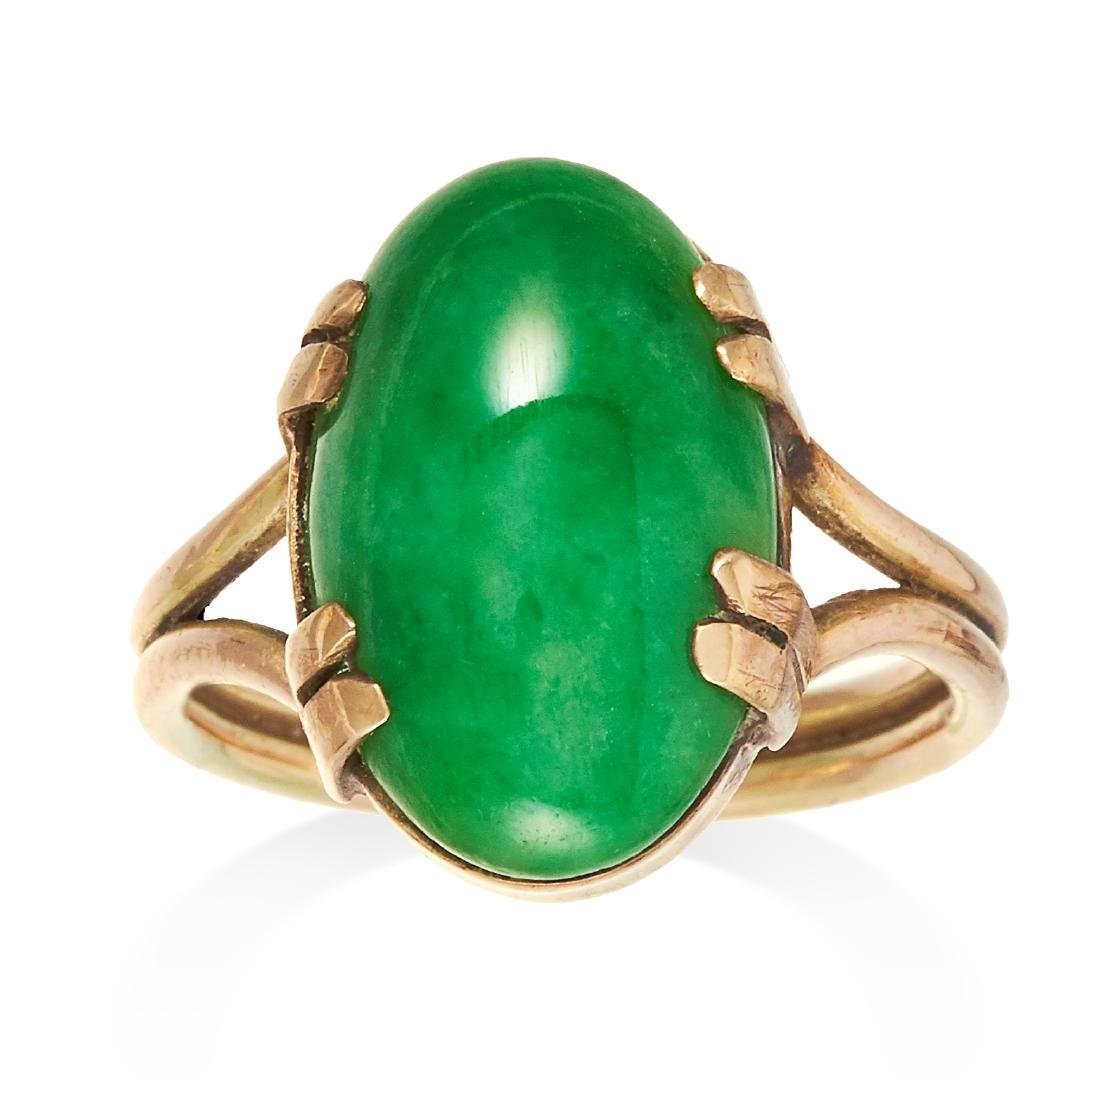 A JADEITE JADE DRESS RING in yellow gold, set with an